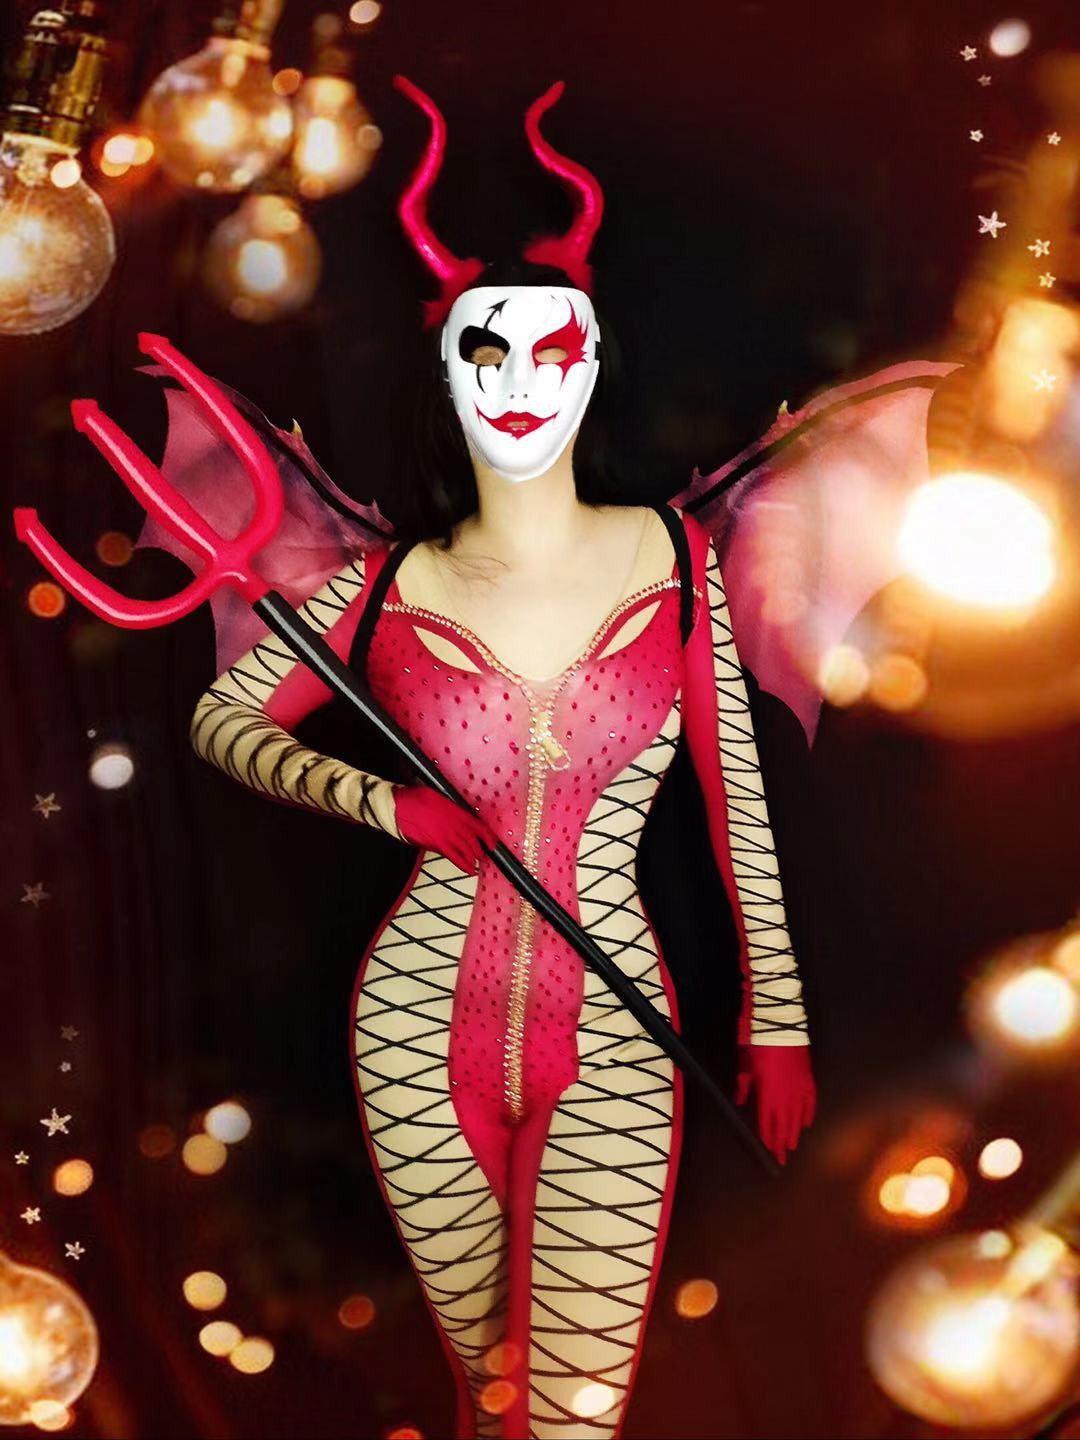 2020 Women New Halloween 3D Printed Red Queen Costume DJ DS Singers Jumpsuit Bling Bodysuit Celebrate Performance Clothing Set